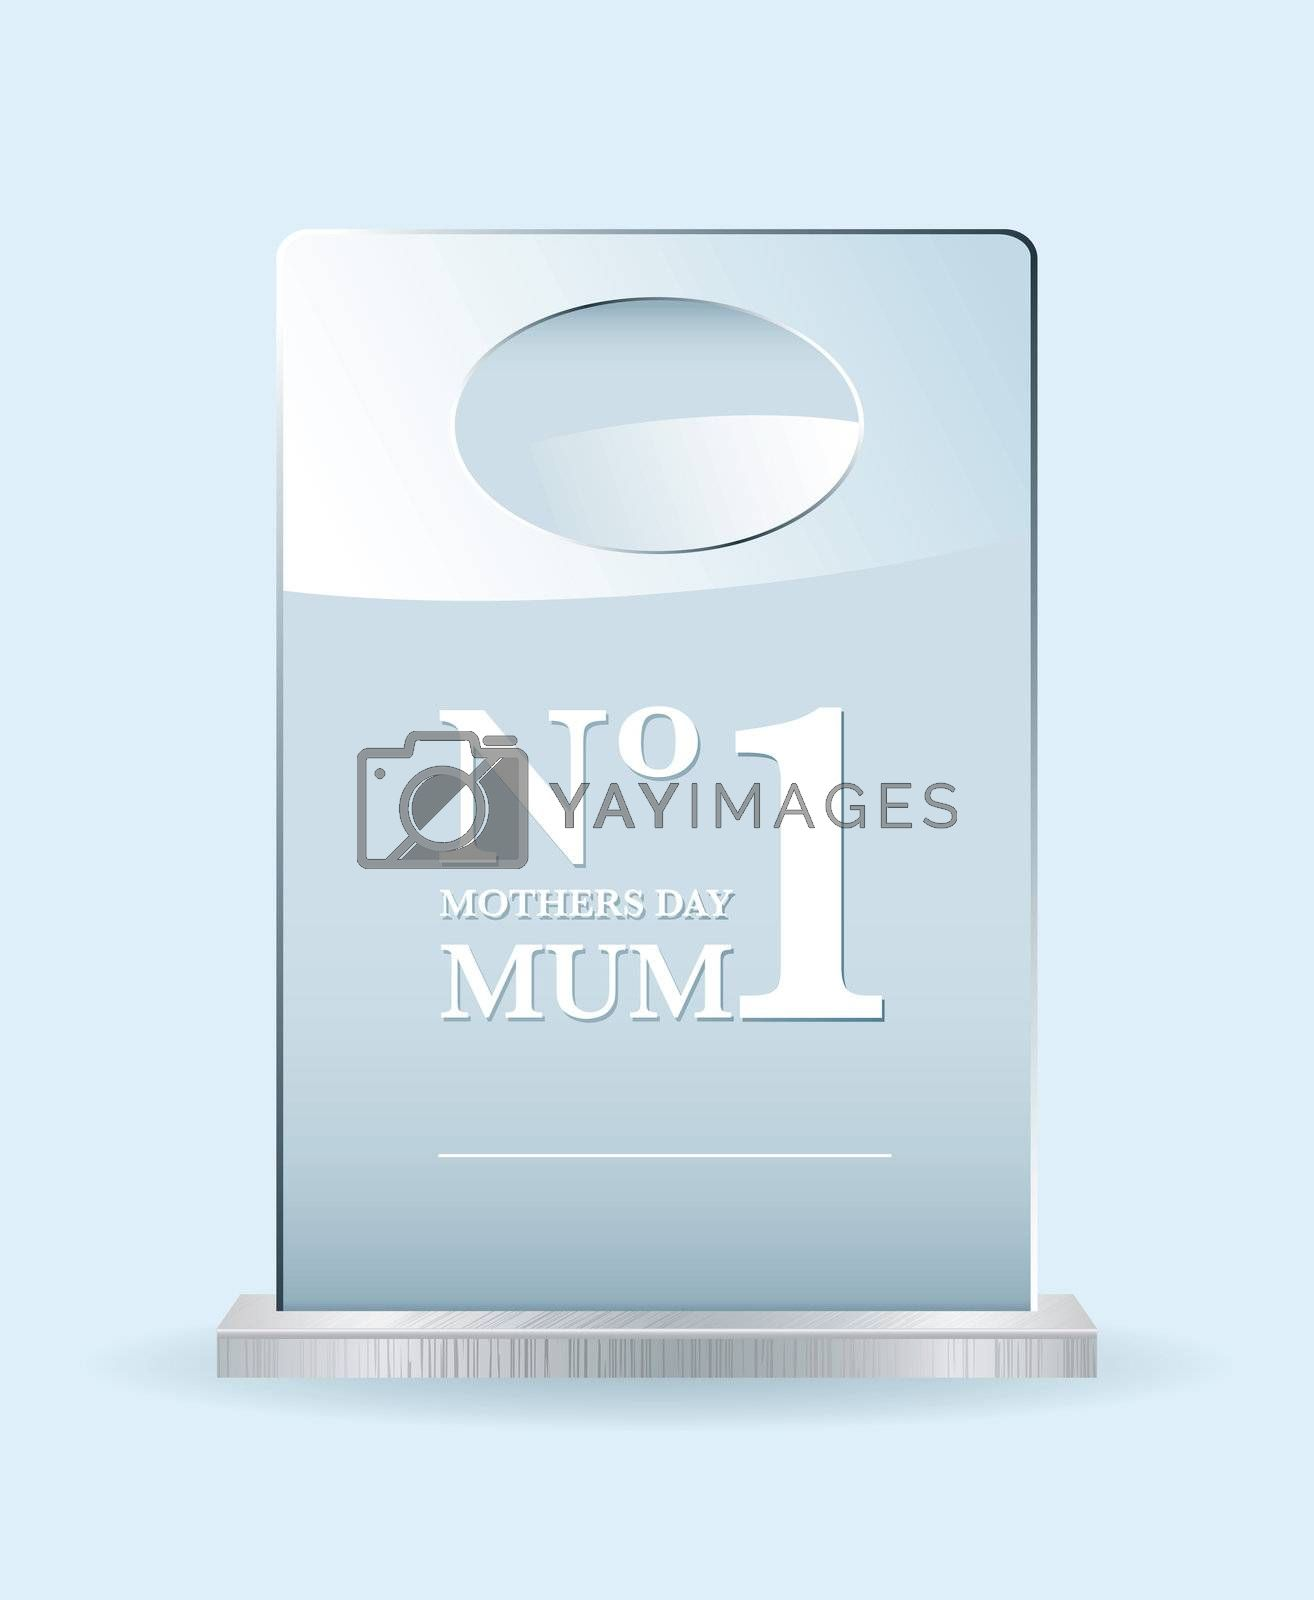 Mothers day award concept with glass sheet for mothers day